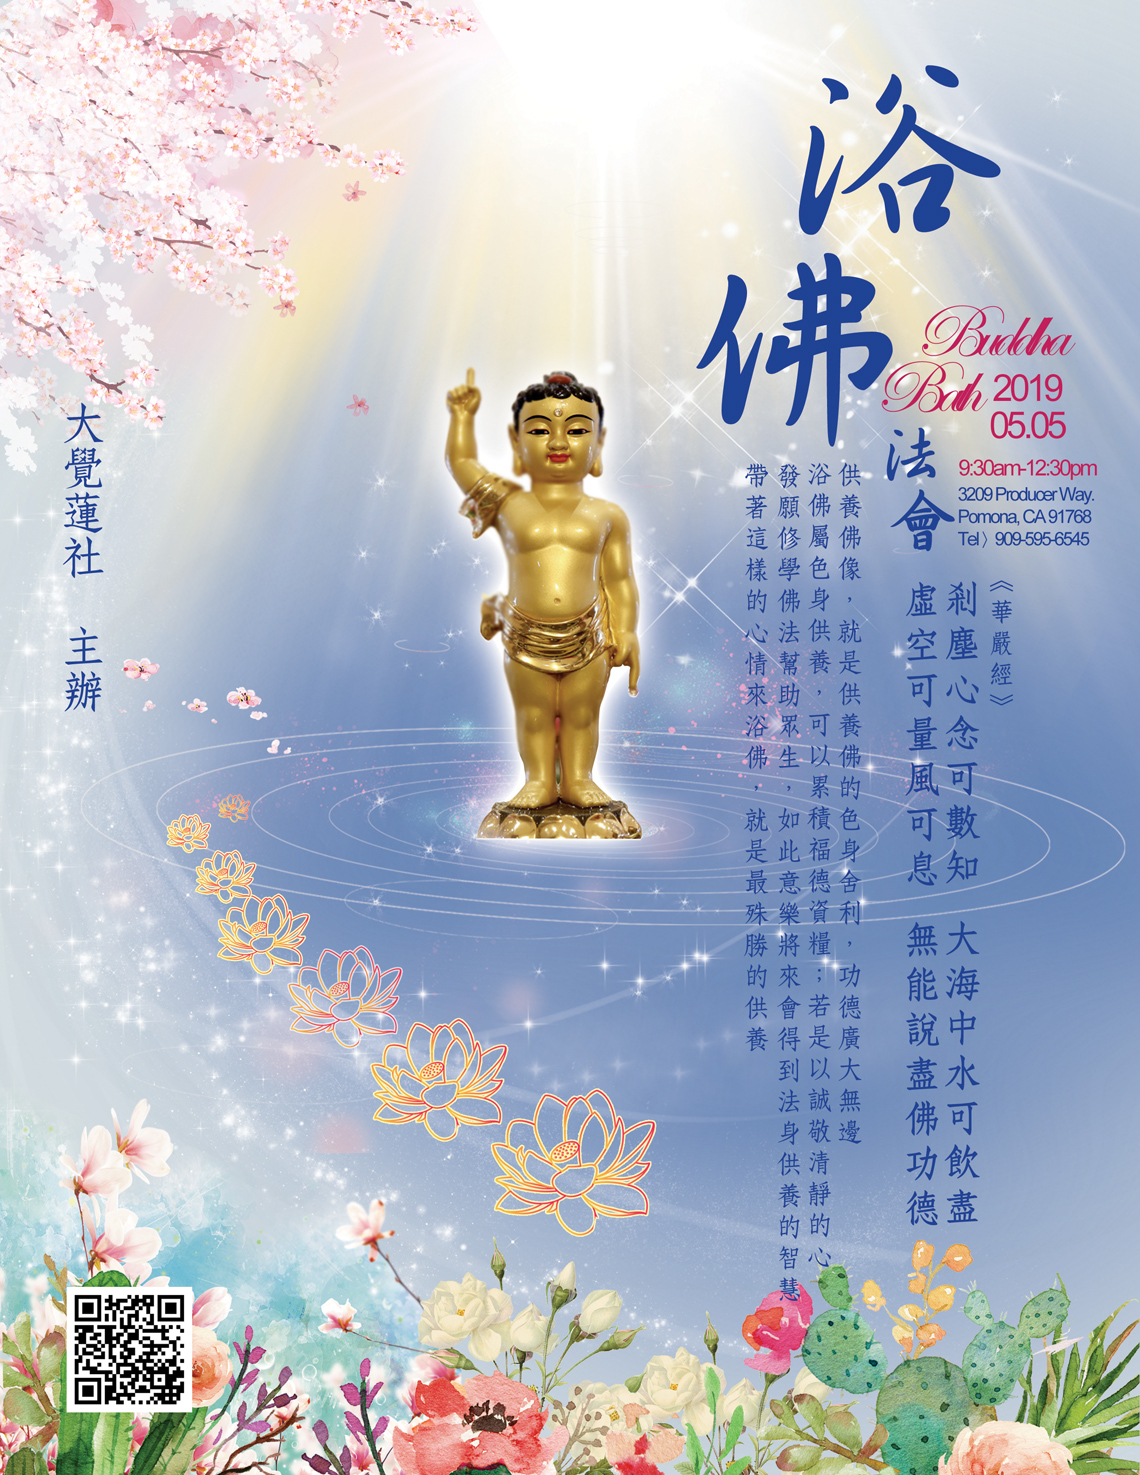 2019 浴佛法會 Buddha Bath Ceremony